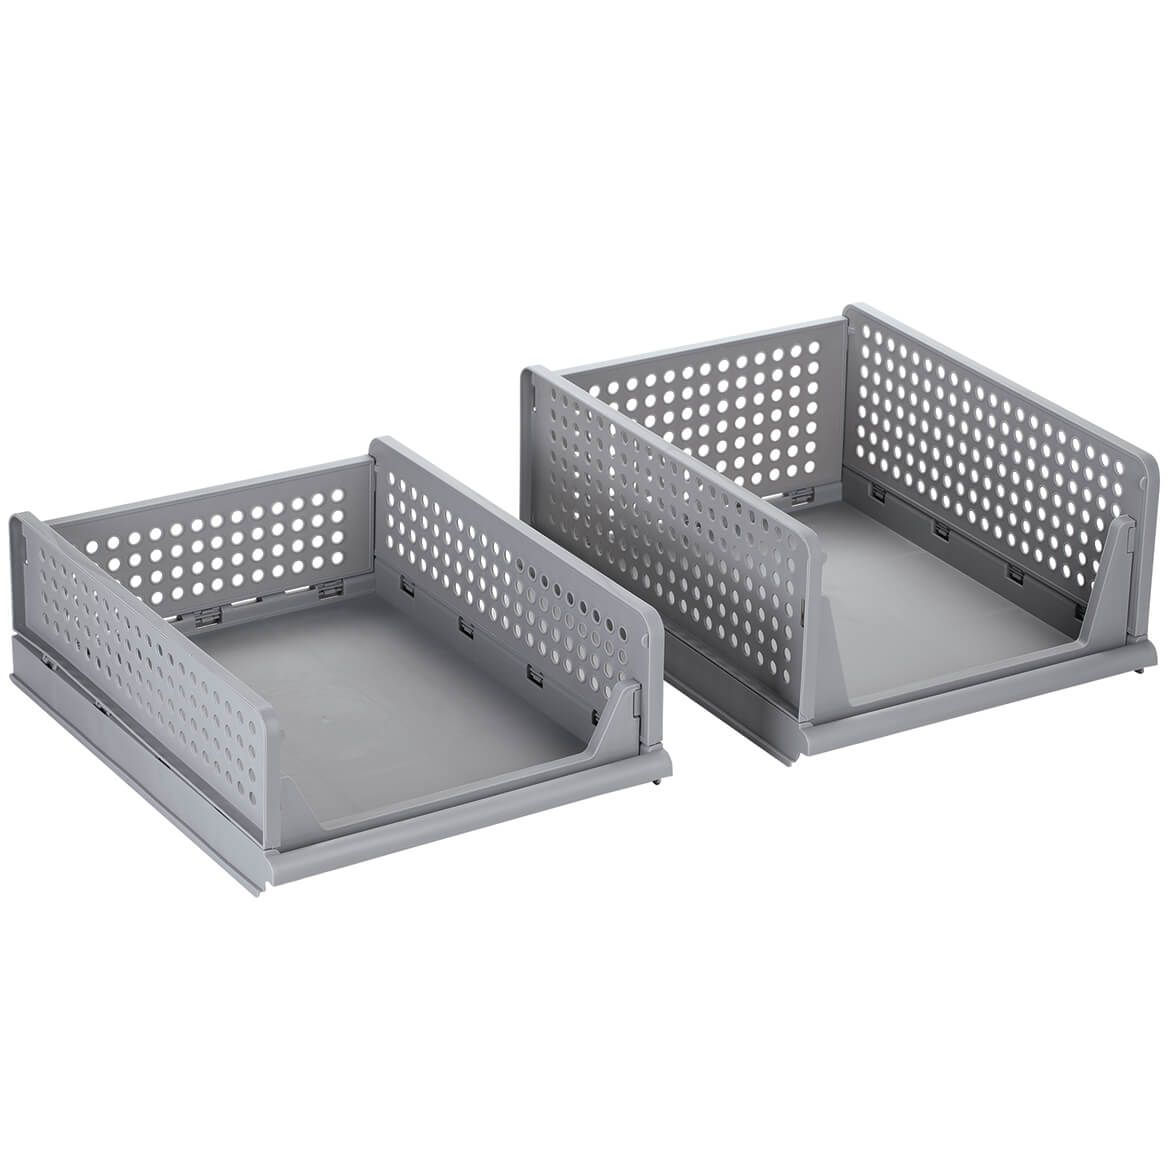 My Home™ Stacking Storage Baskets, Set of 2-372255